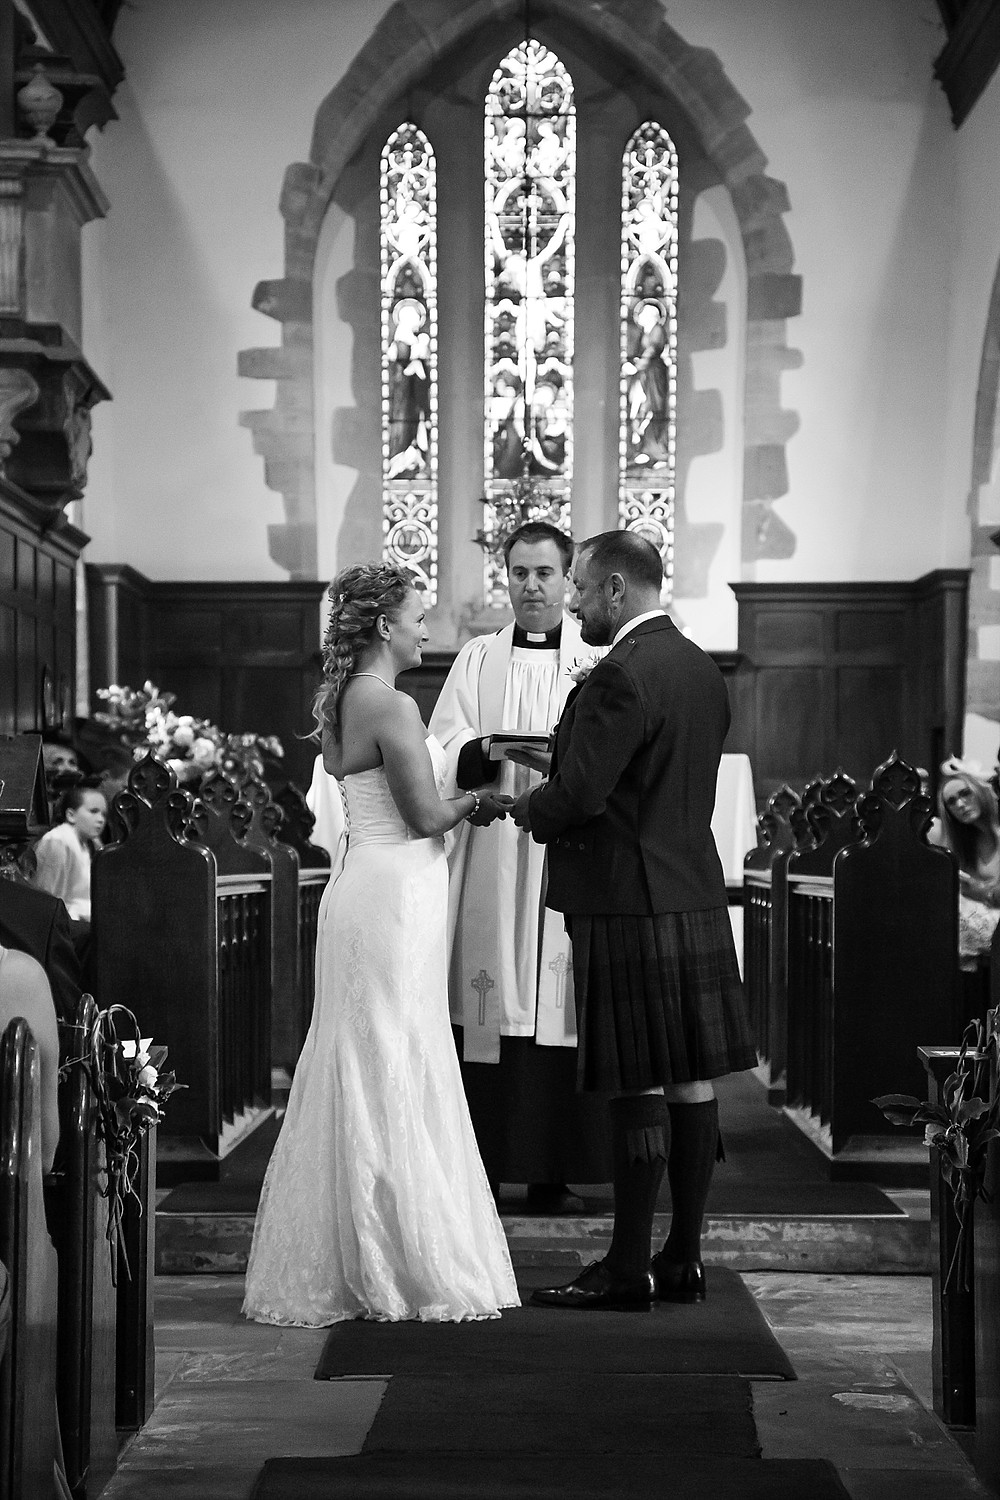 Wedding ceremony at St. Mary's Church, Clifton-upon-Dunsmore